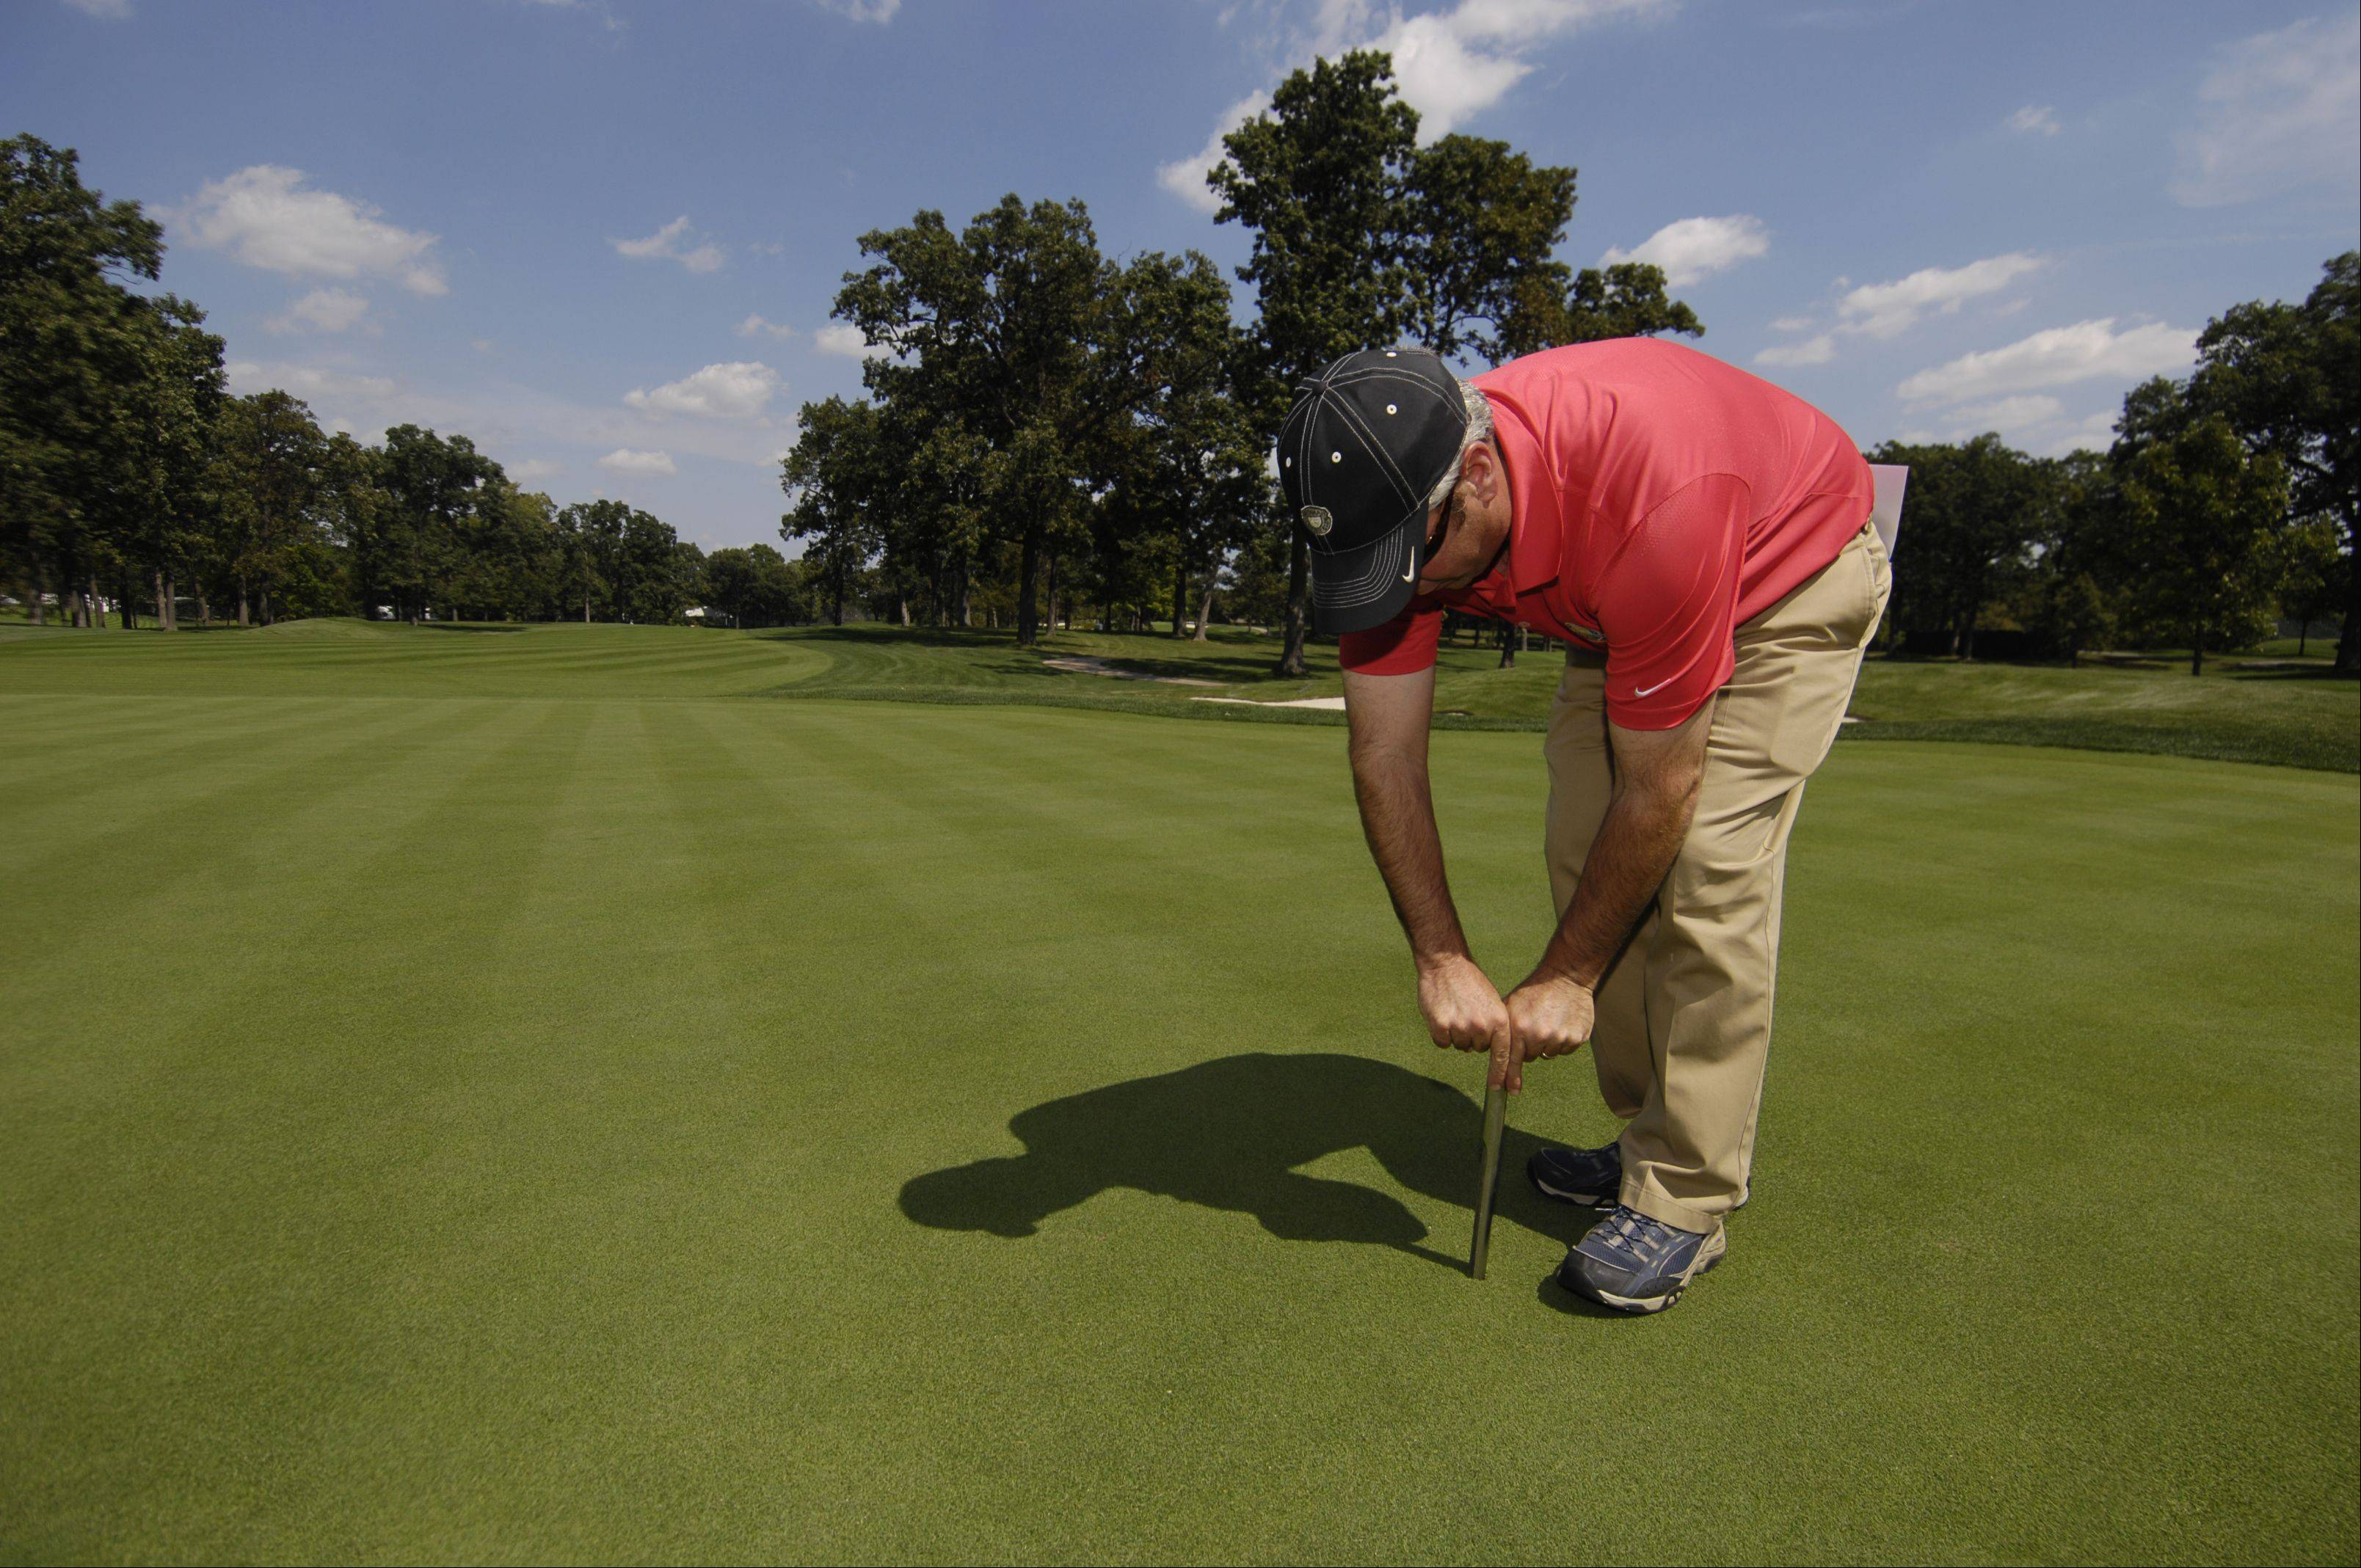 Curtis Tyrrell, director of golf course operations at Medinah Country Club, pulls a sample of grass to test.